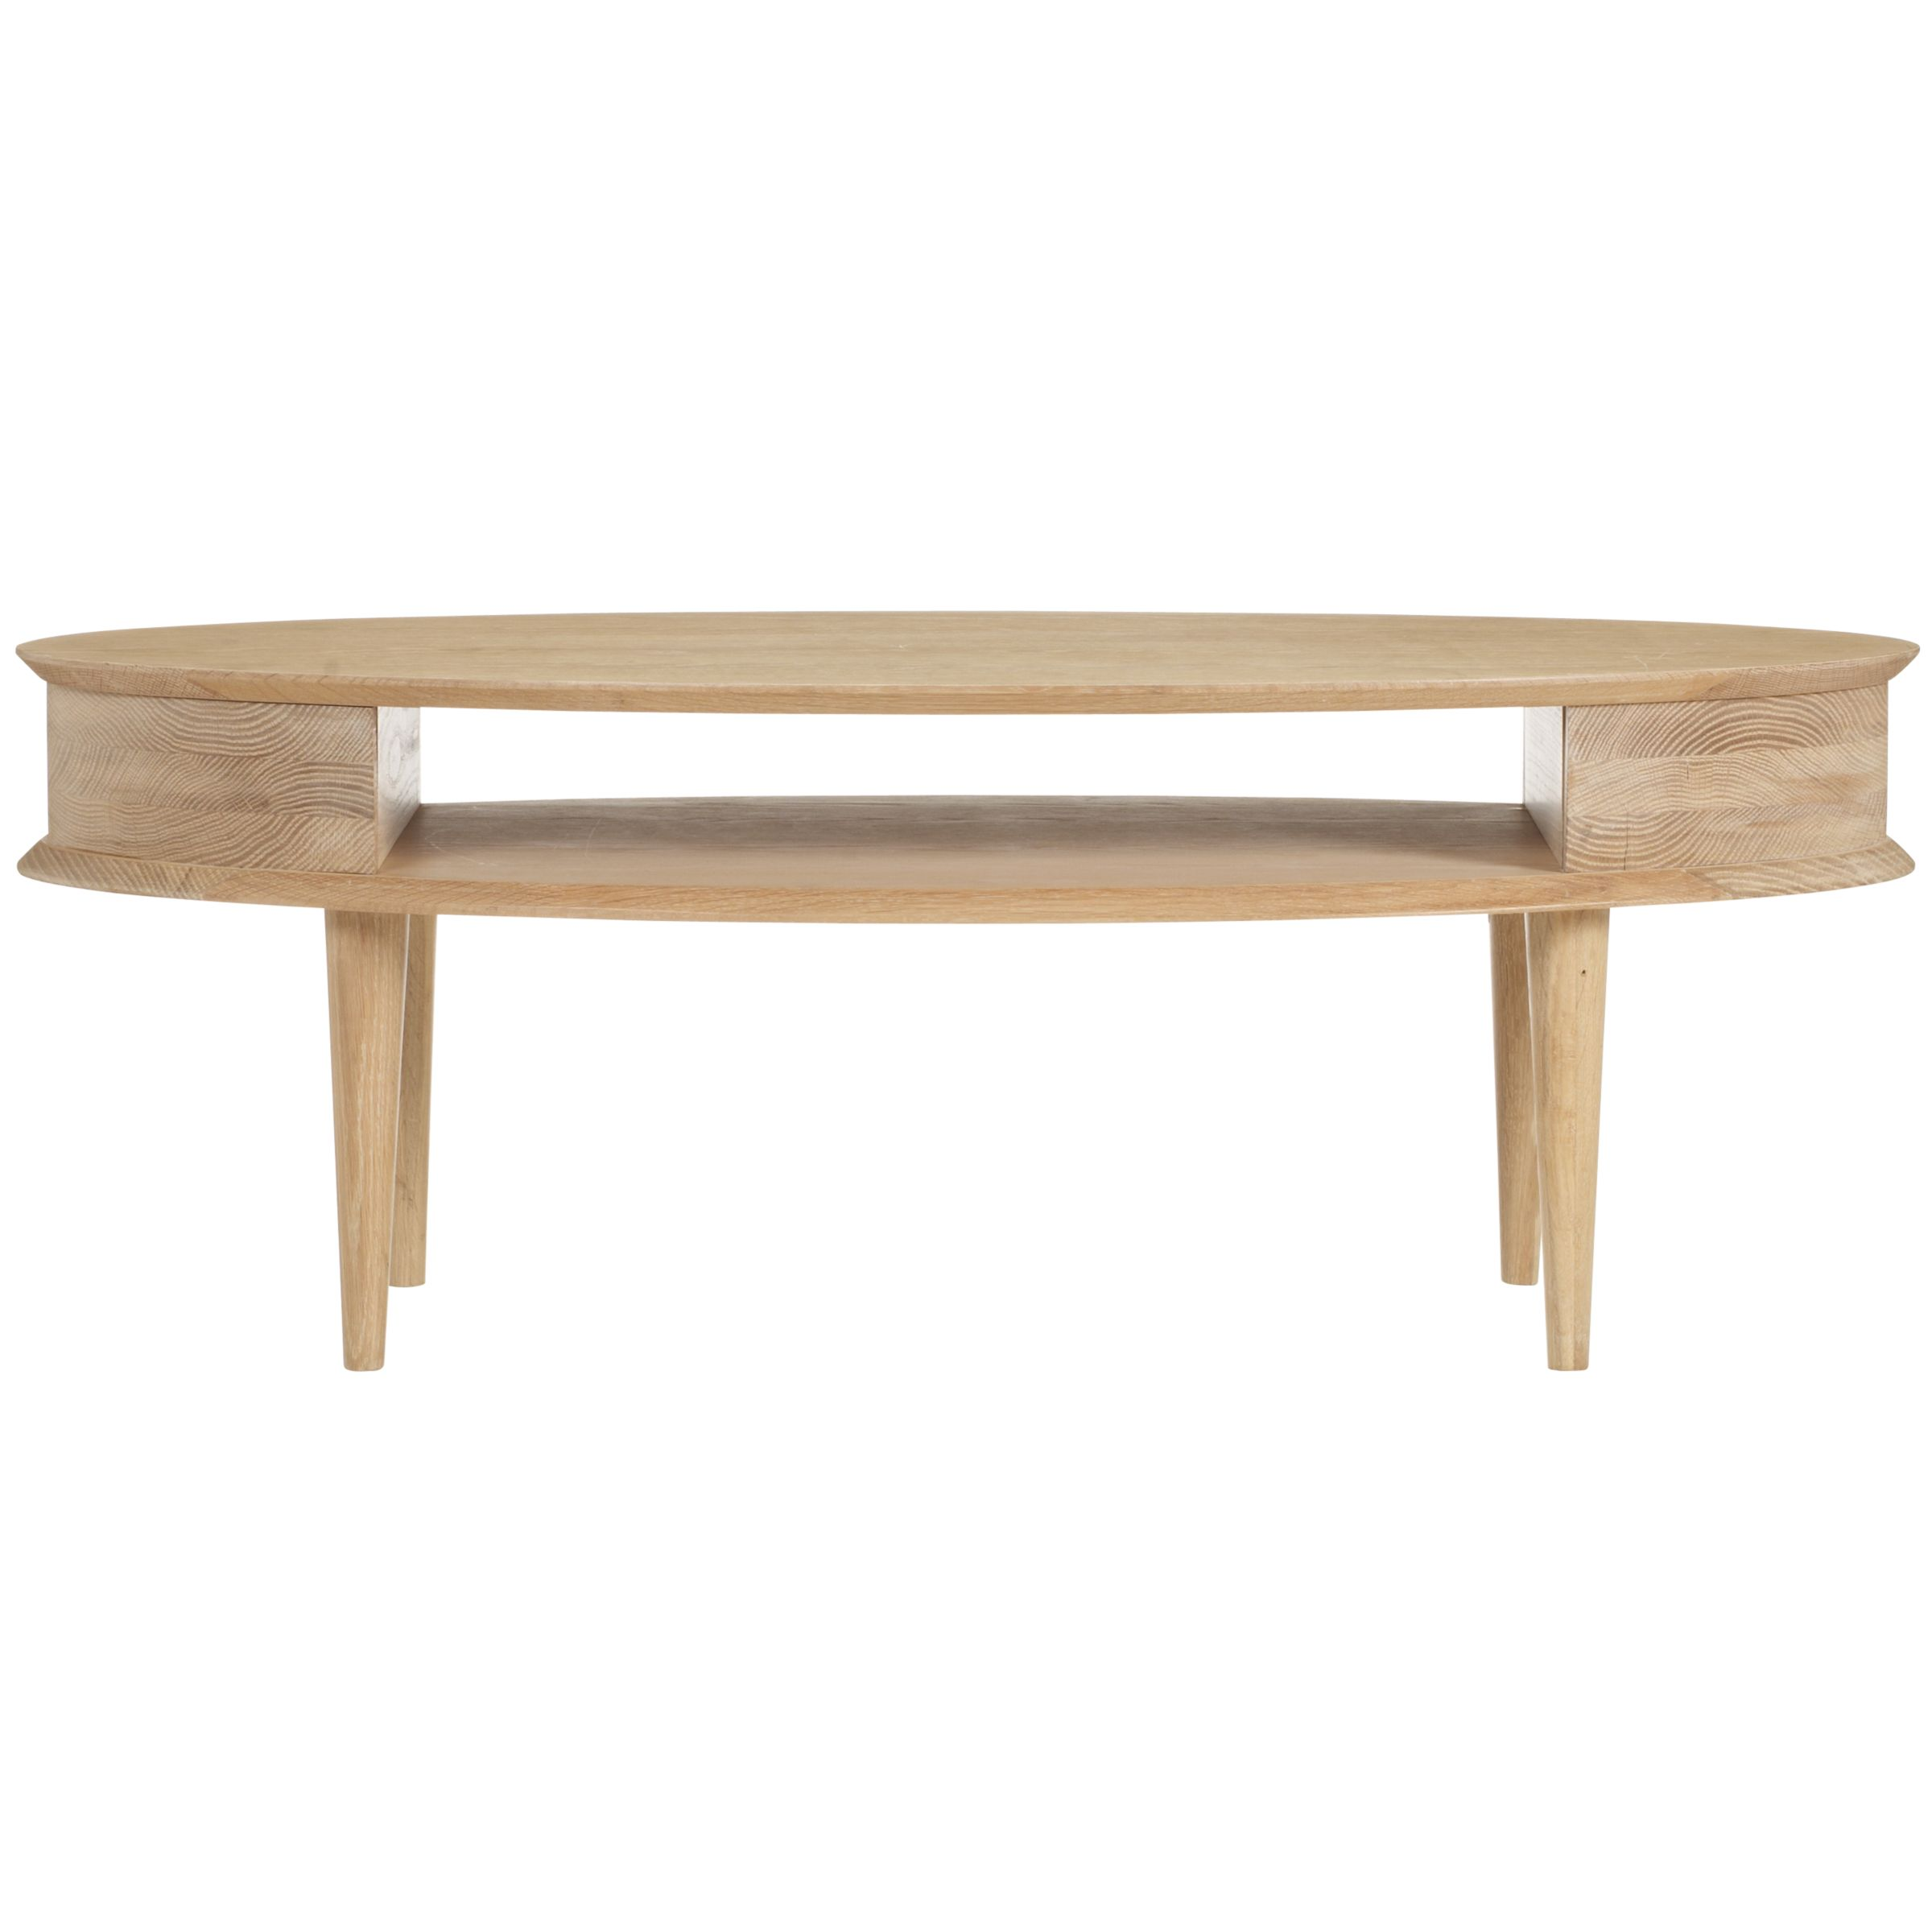 john lewis oak tables reviews : 230719932 from www.comparestoreprices.co.uk size 1600 x 1600 jpeg 104kB